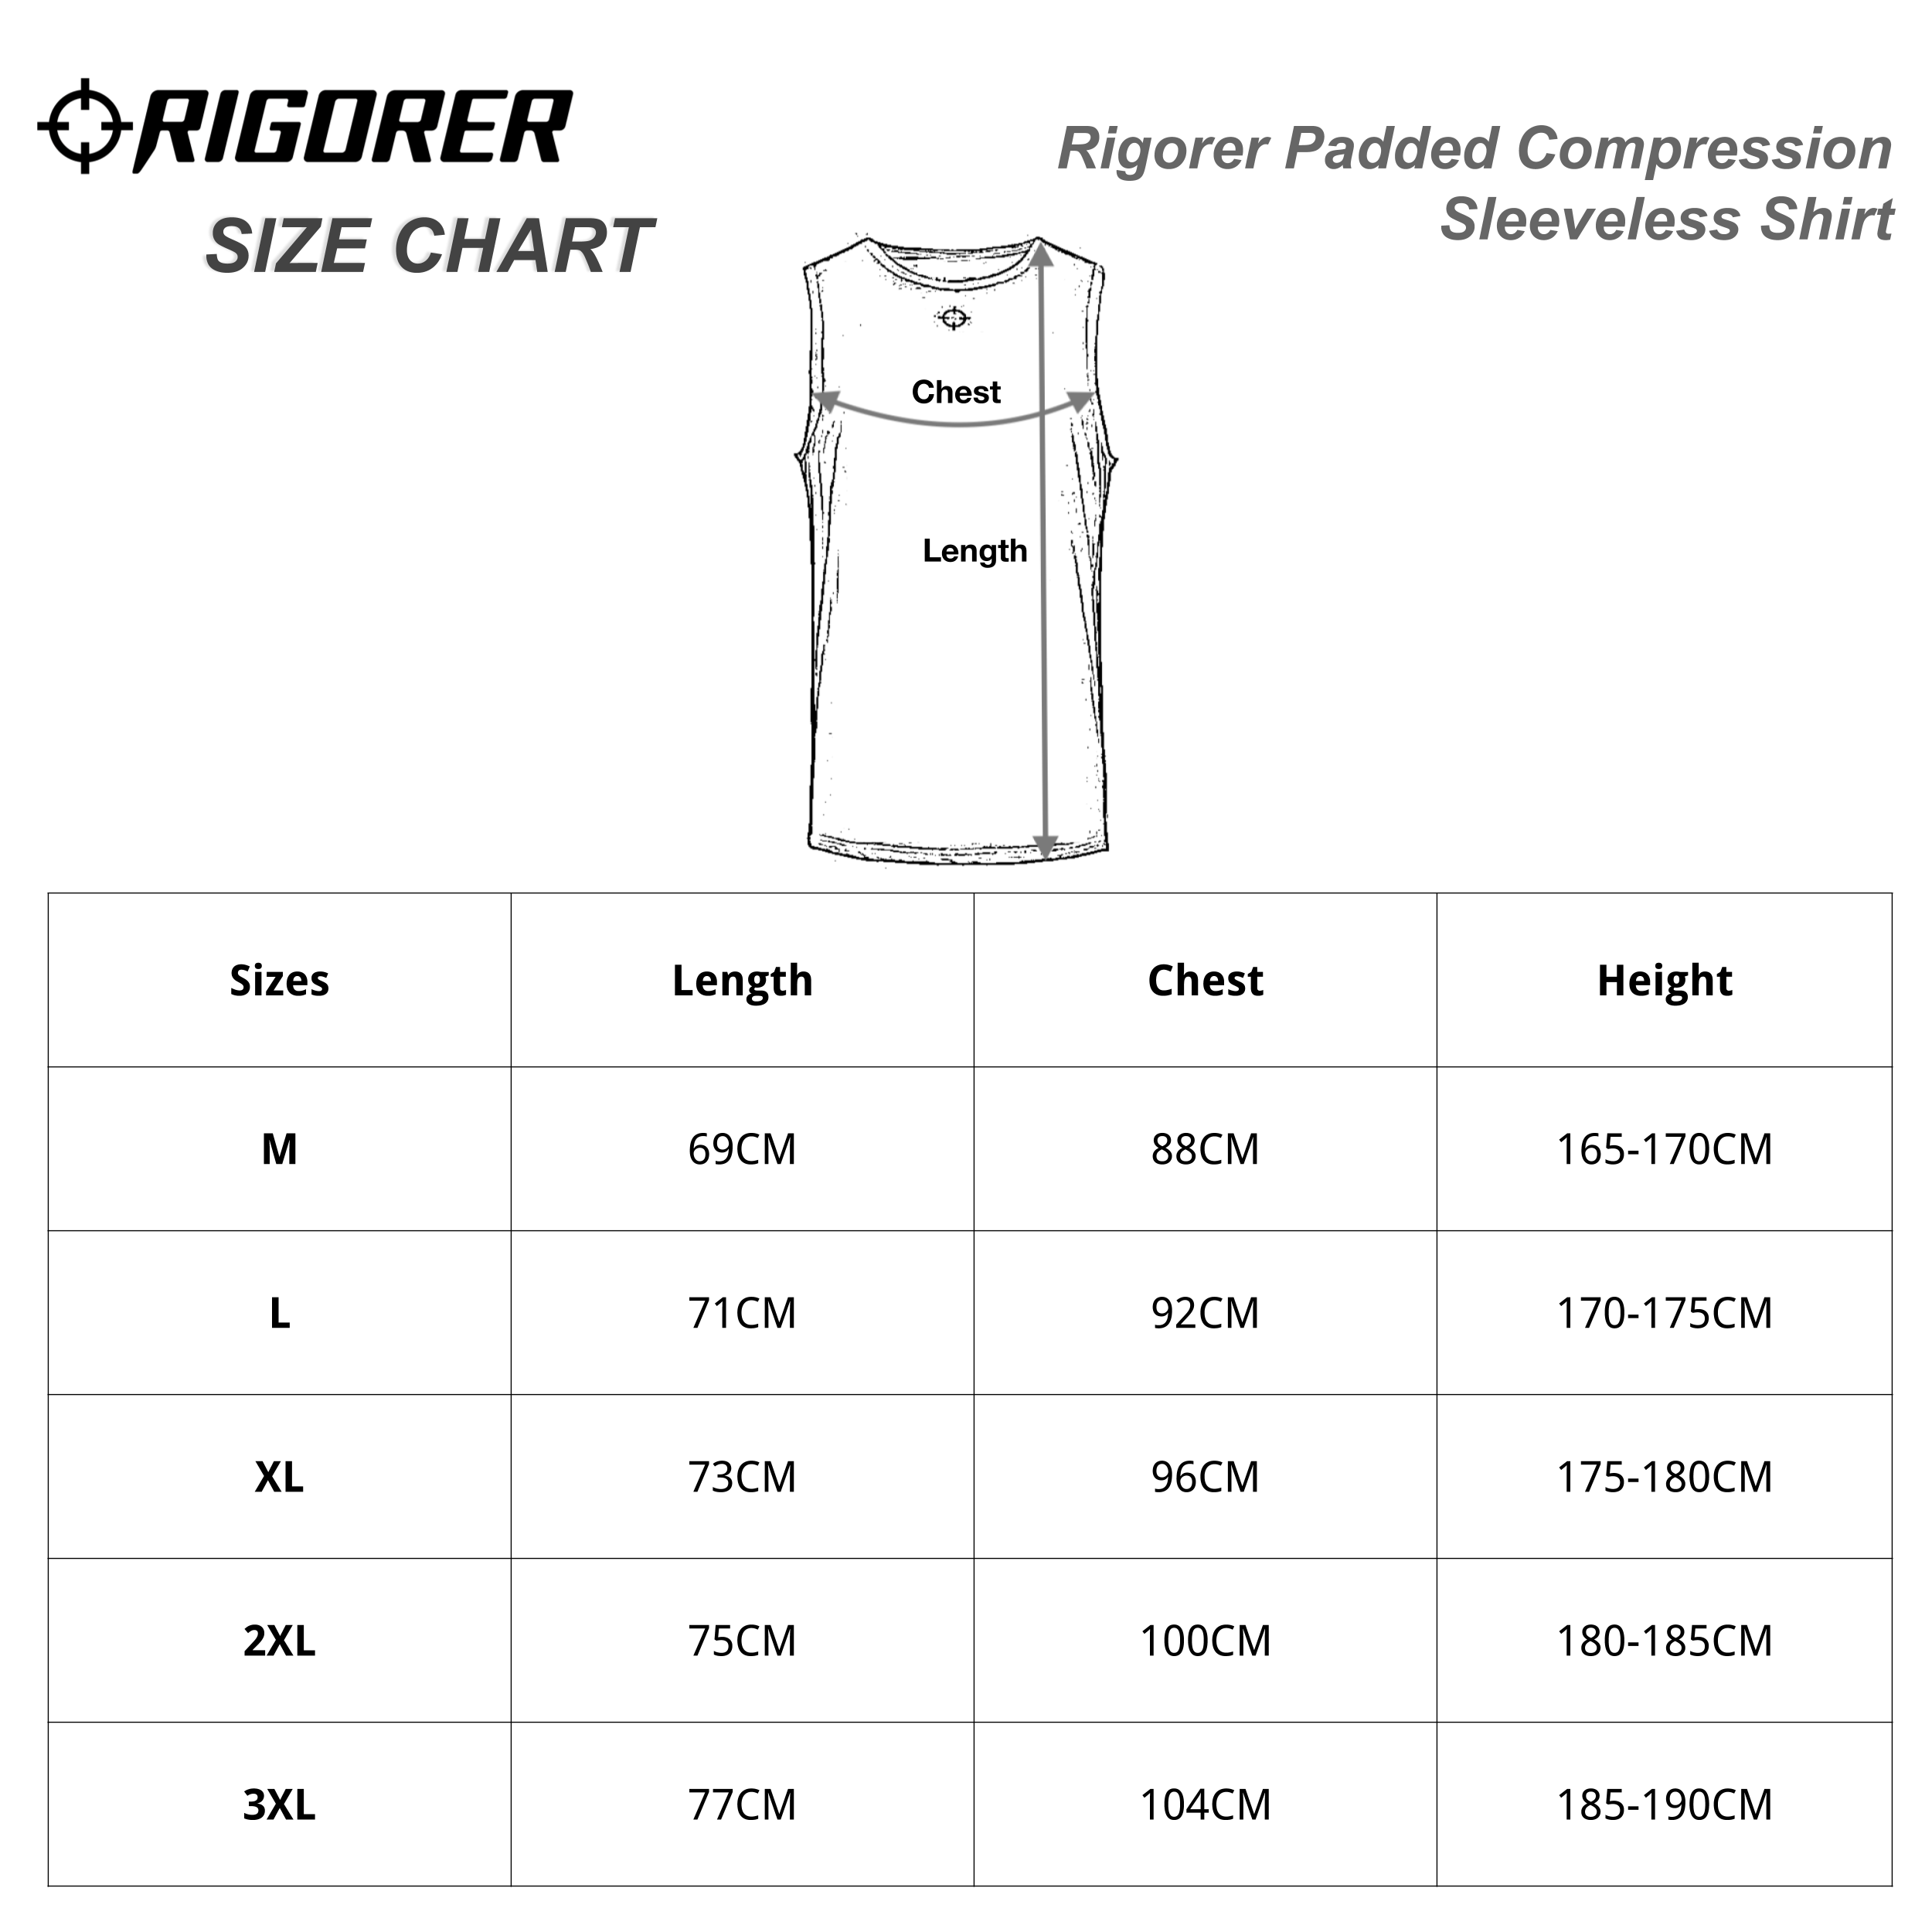 Rigorer Padded Compression Sleeveless Shirt Sizing Chart